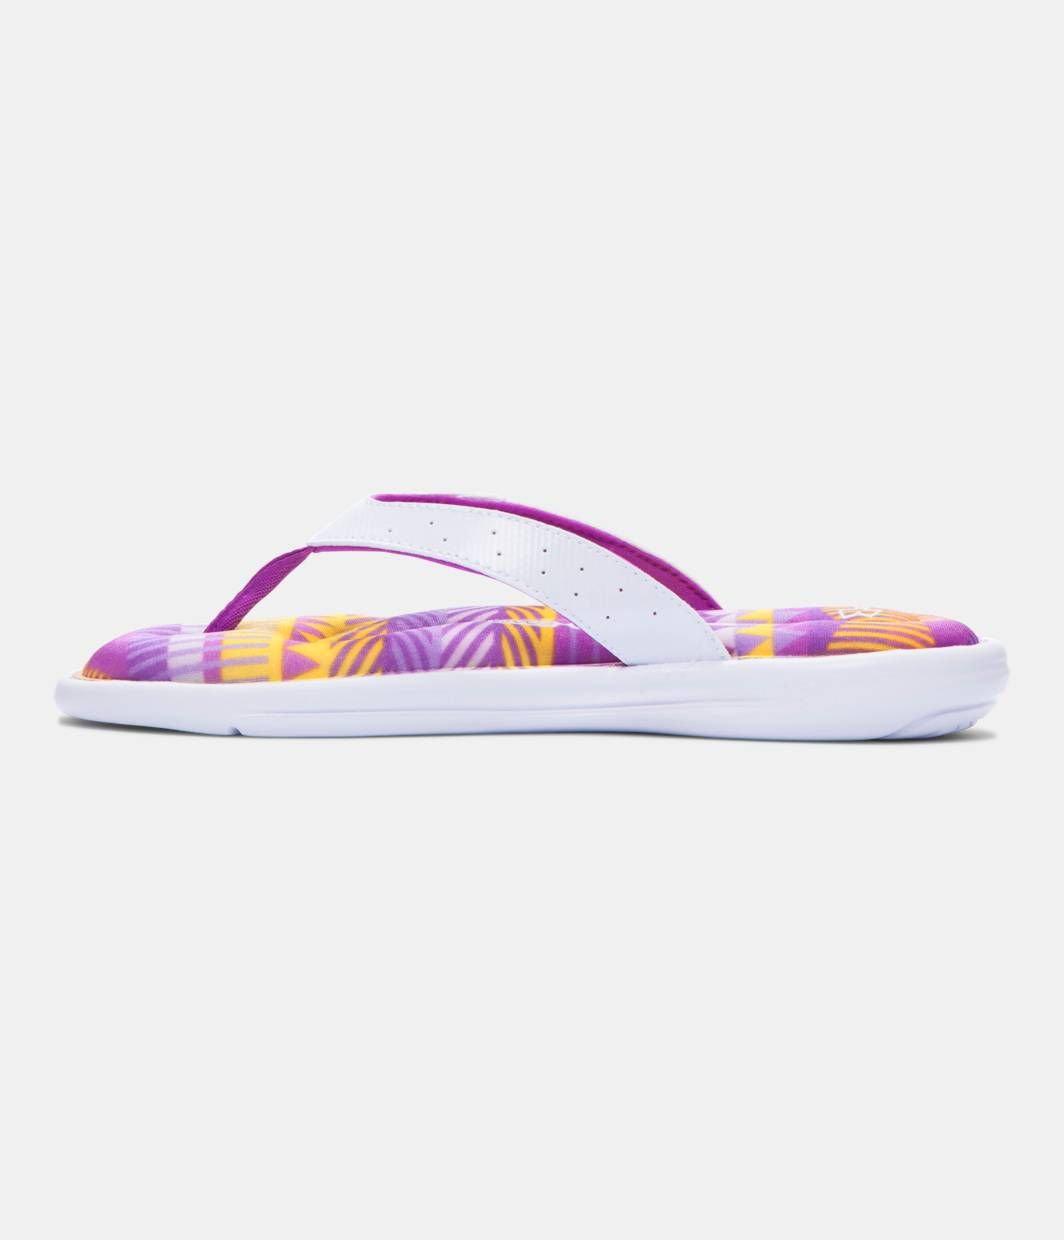 8d6825ec986 Shop Under Armour for Women s UA Marbella Tropic Sandals in our Womens  Sandals department. Free